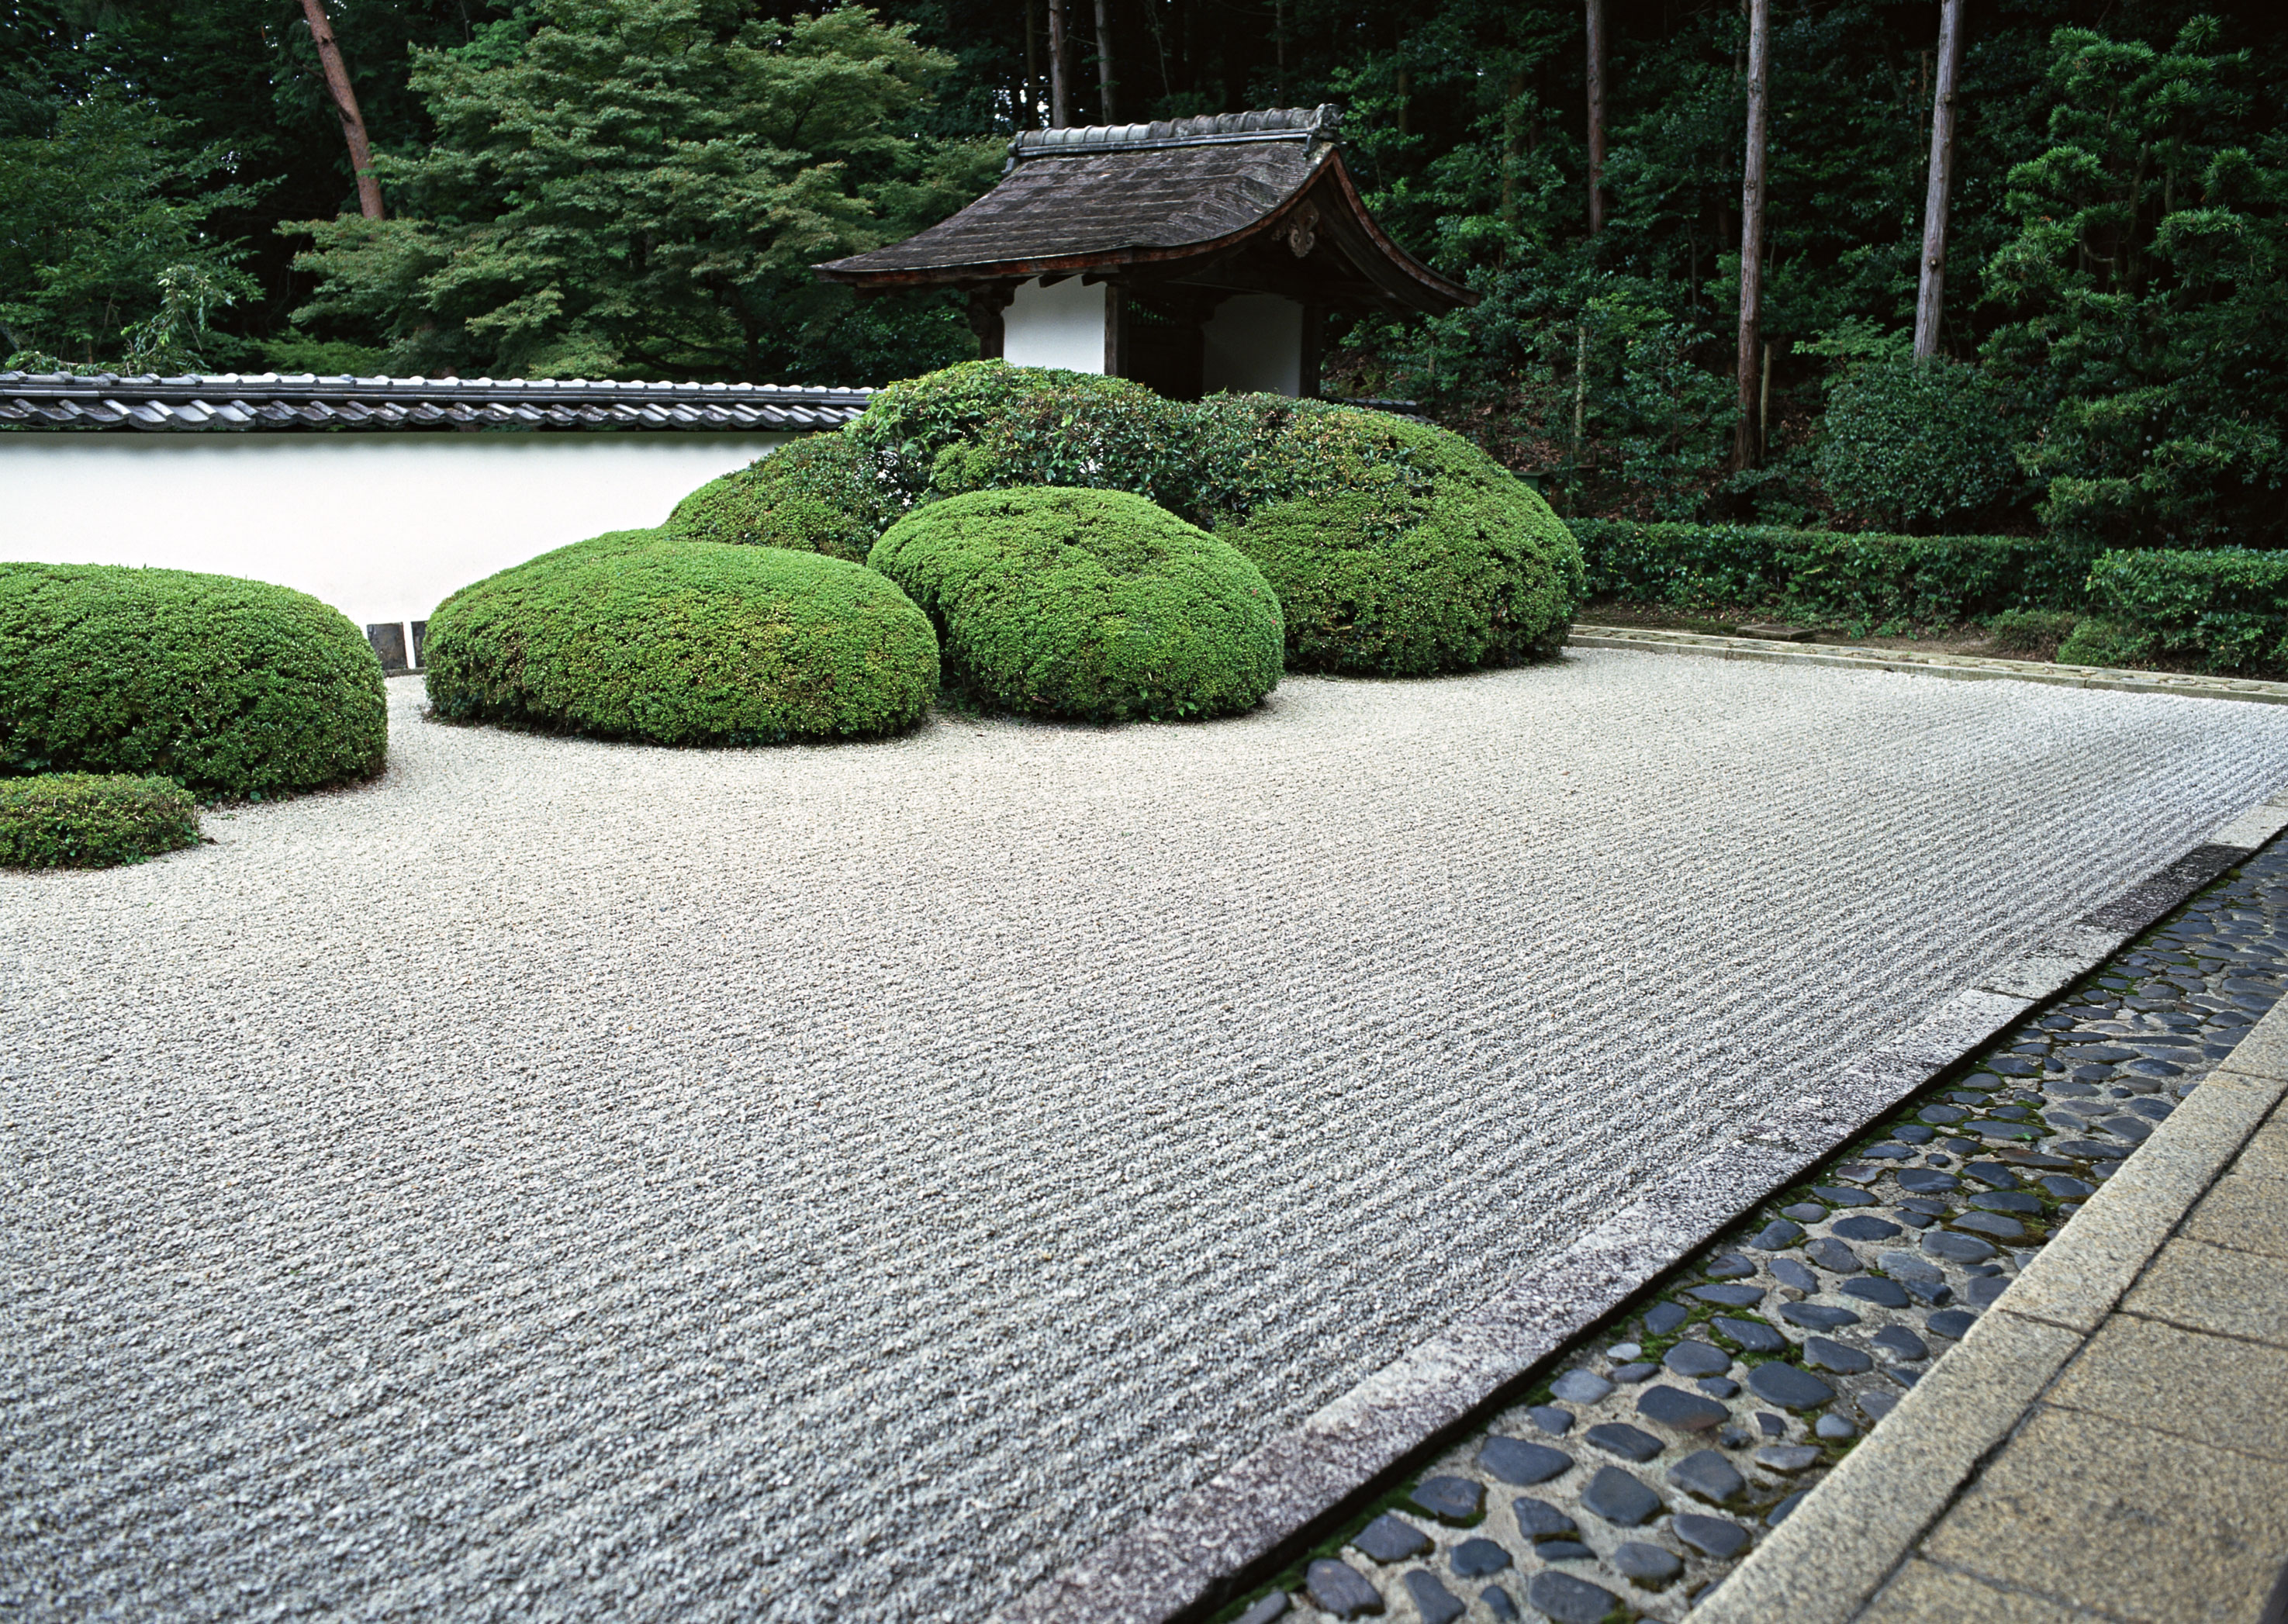 Why do we love japanese garden design it 39 s all about the soul perfect plants - Japanese garden ...